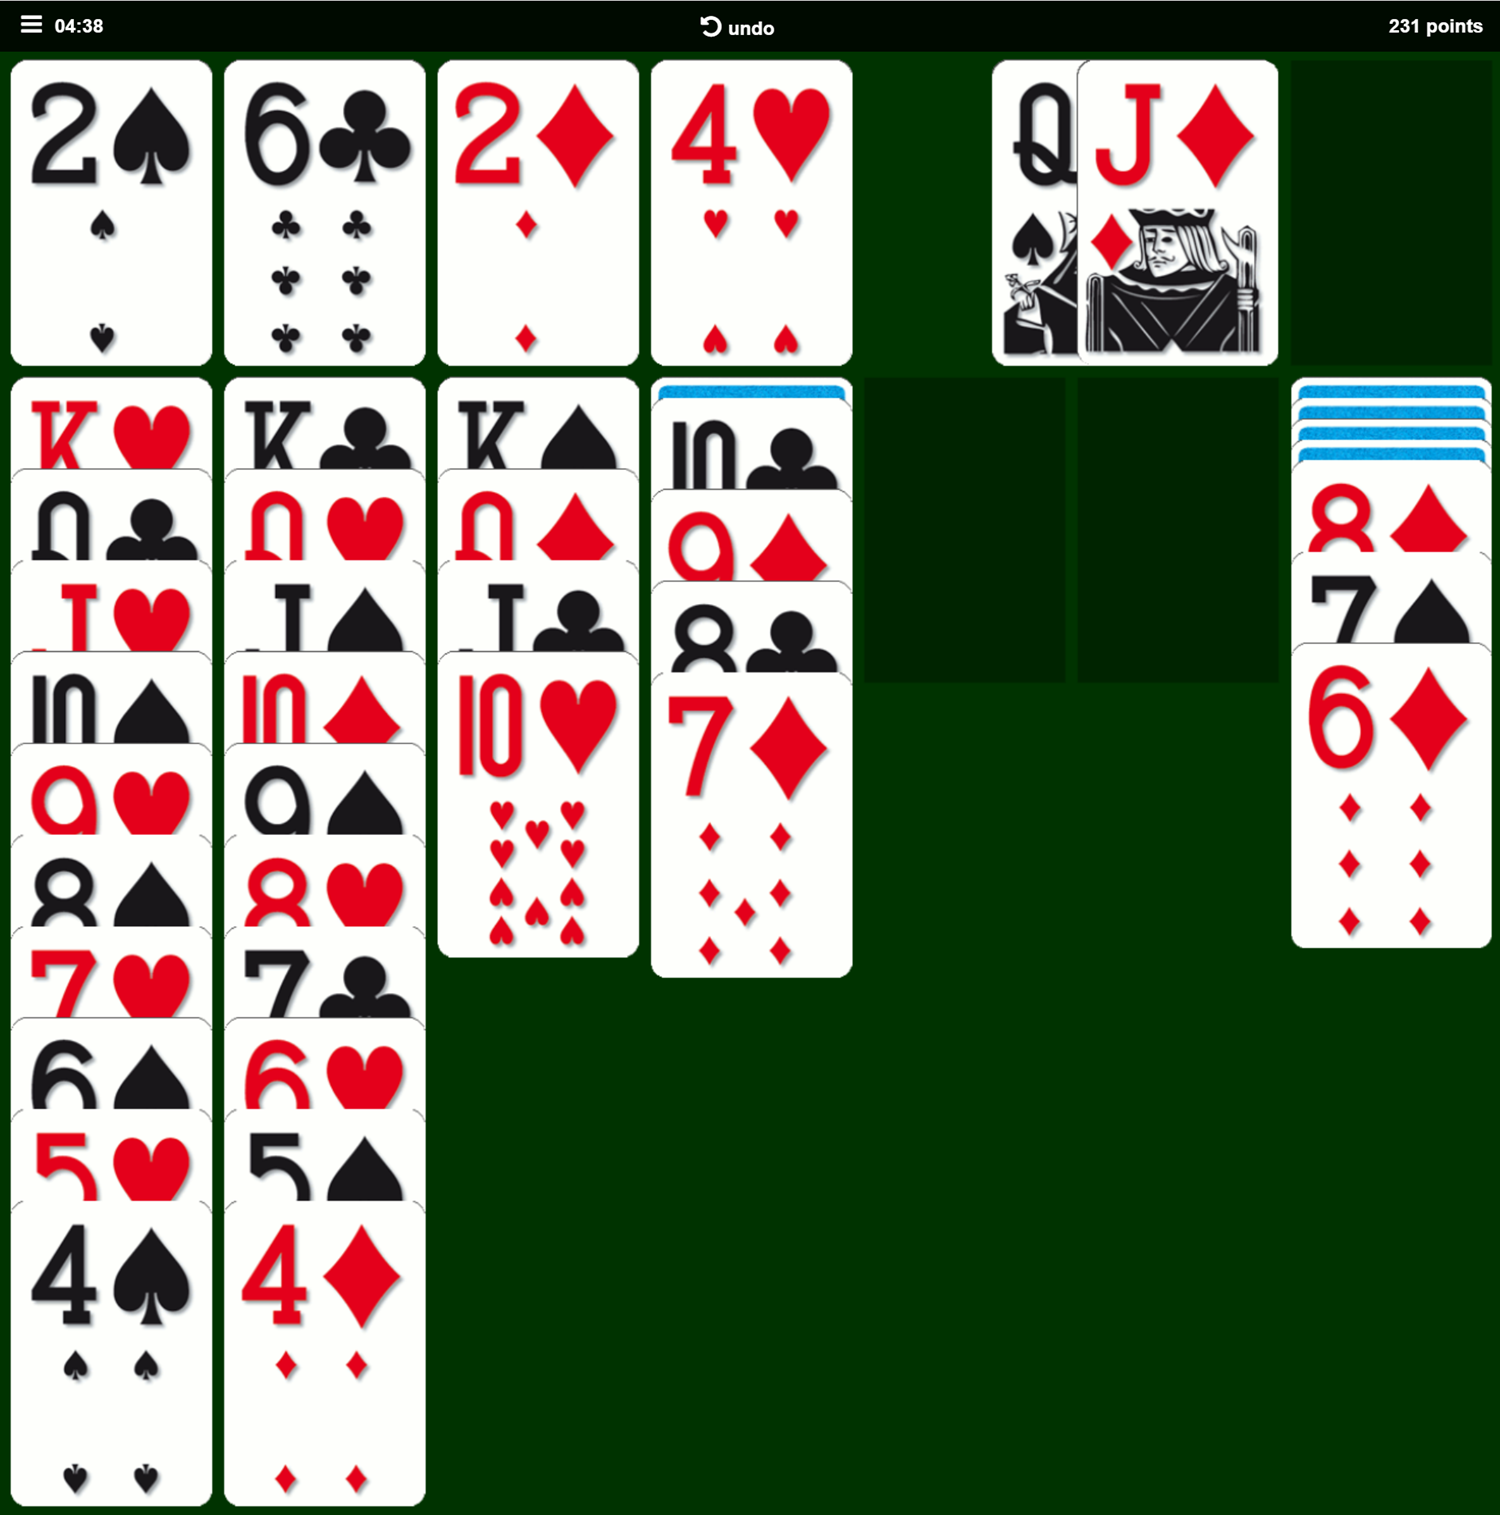 Classic Solitaire Card Game Play Screenshot.